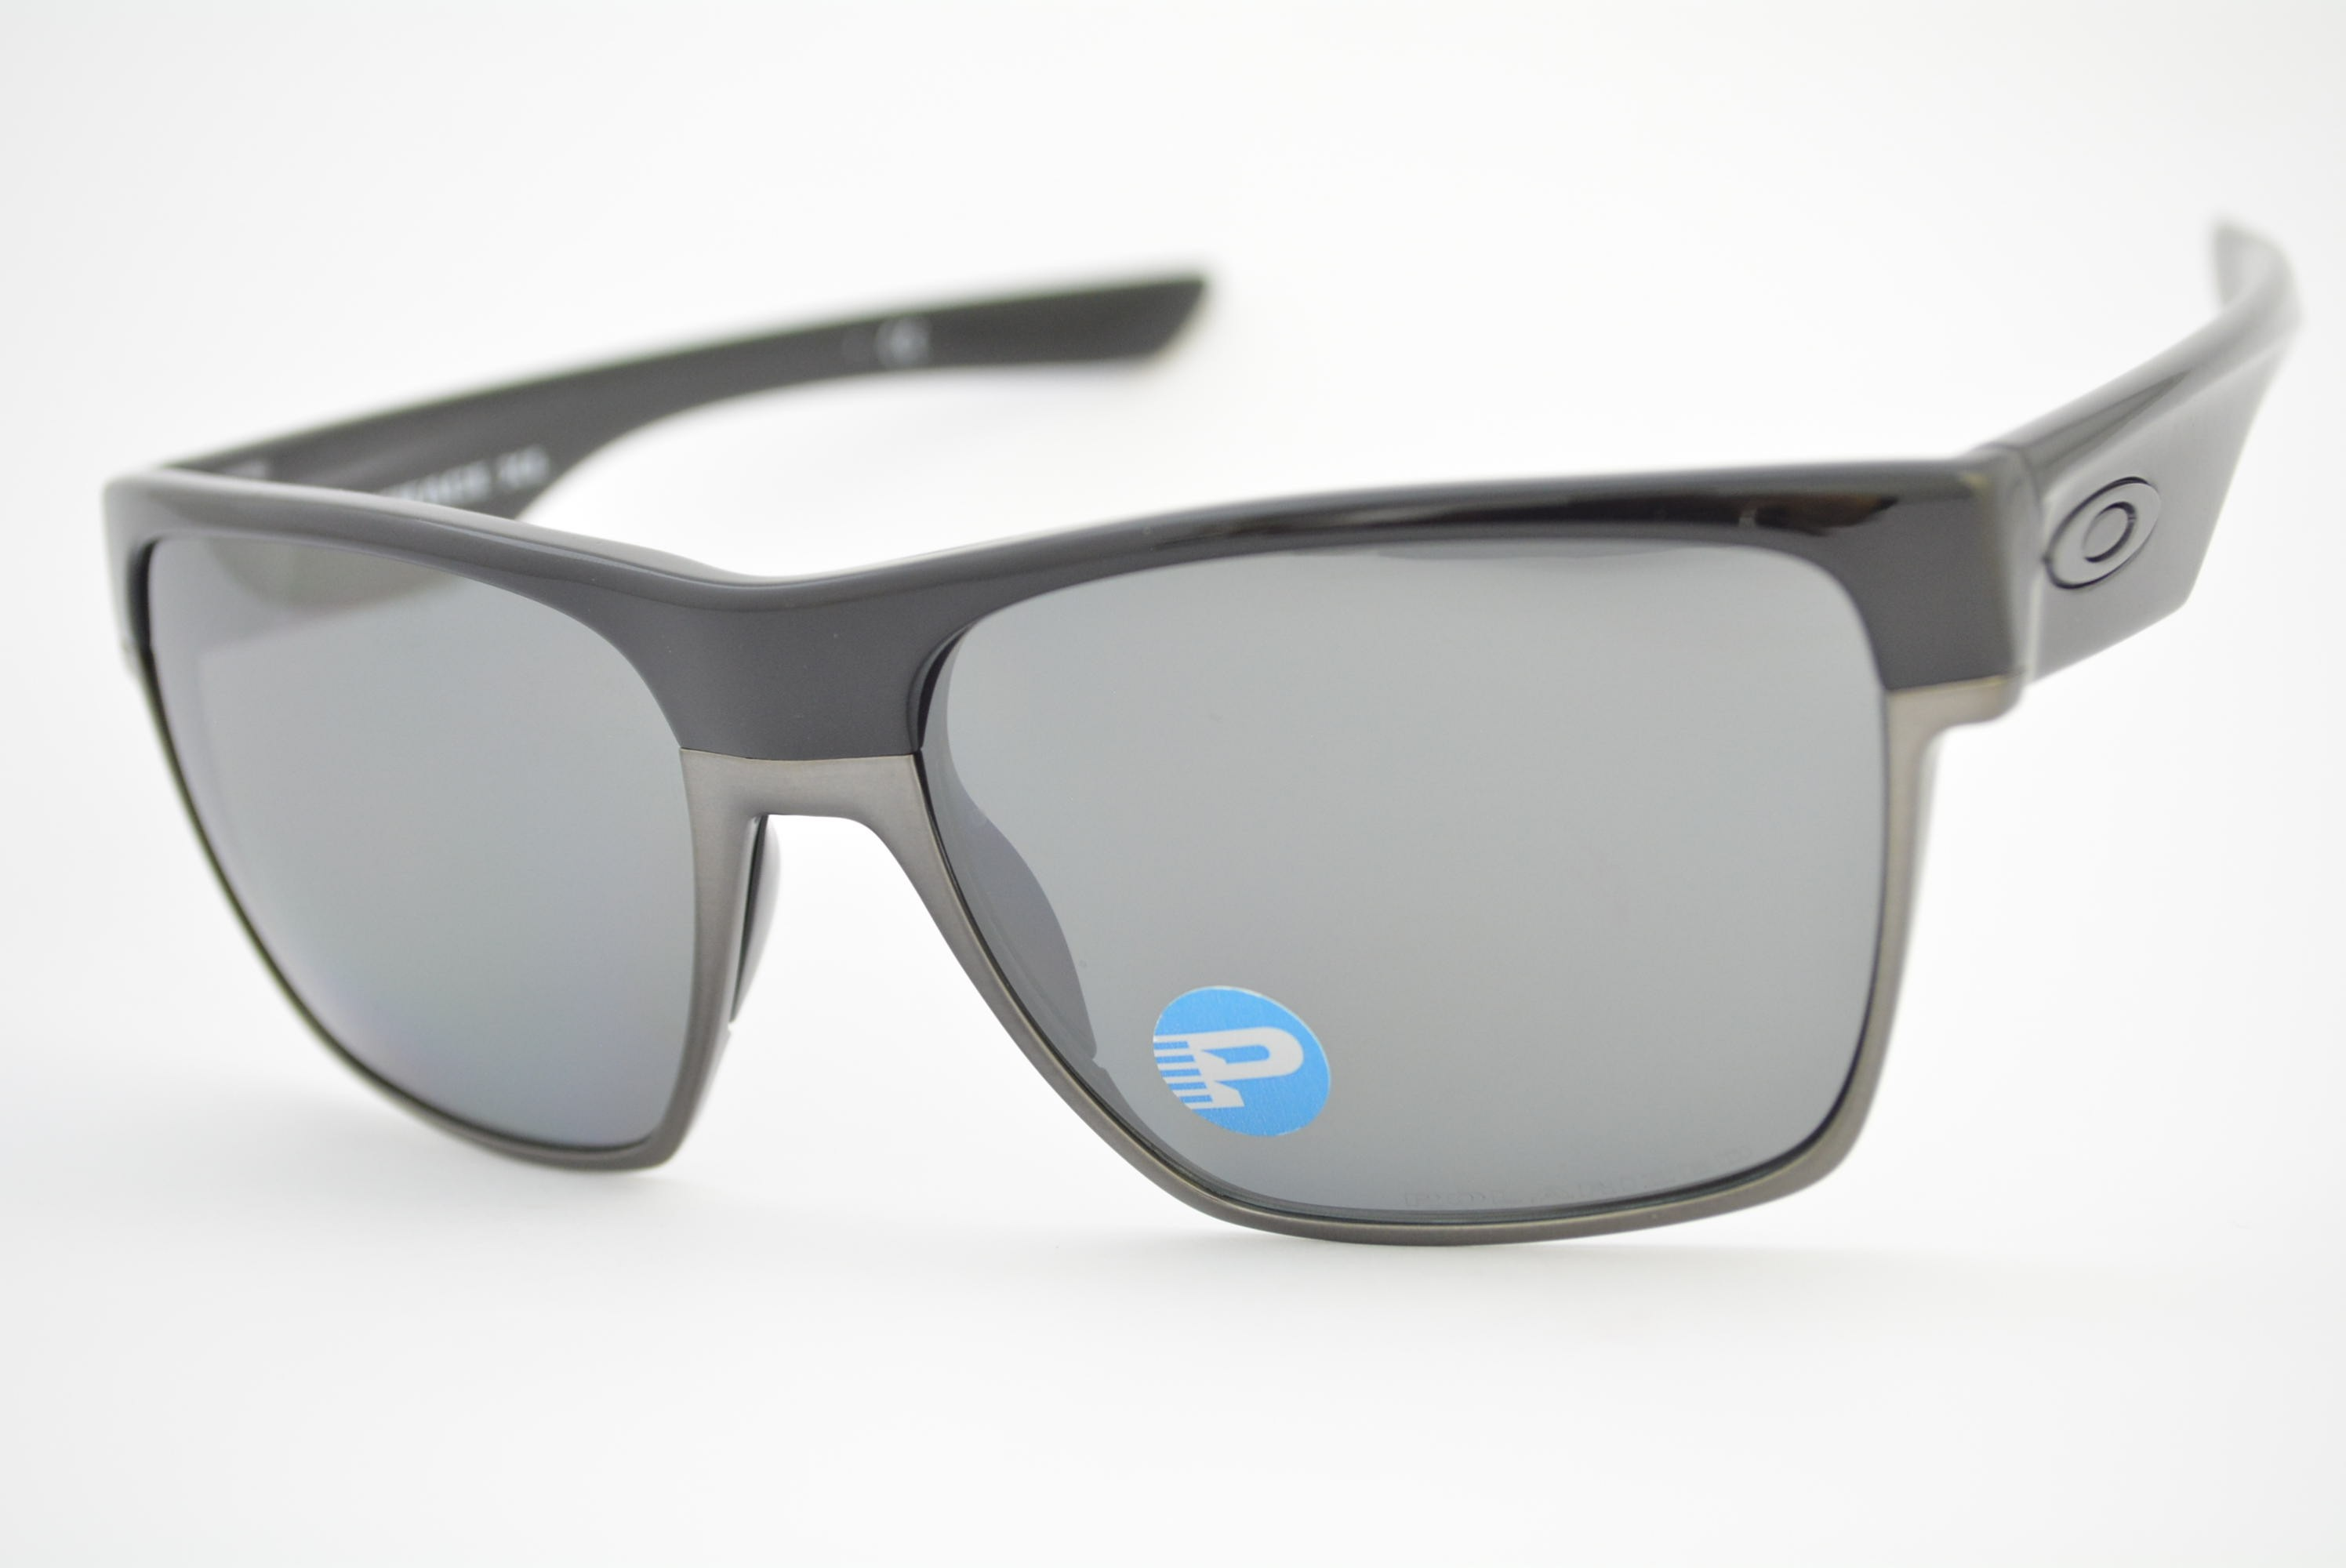 b22d429e4240c óculos de sol Oakley mod Two Face XL polished black w black iridium  polarized 009350